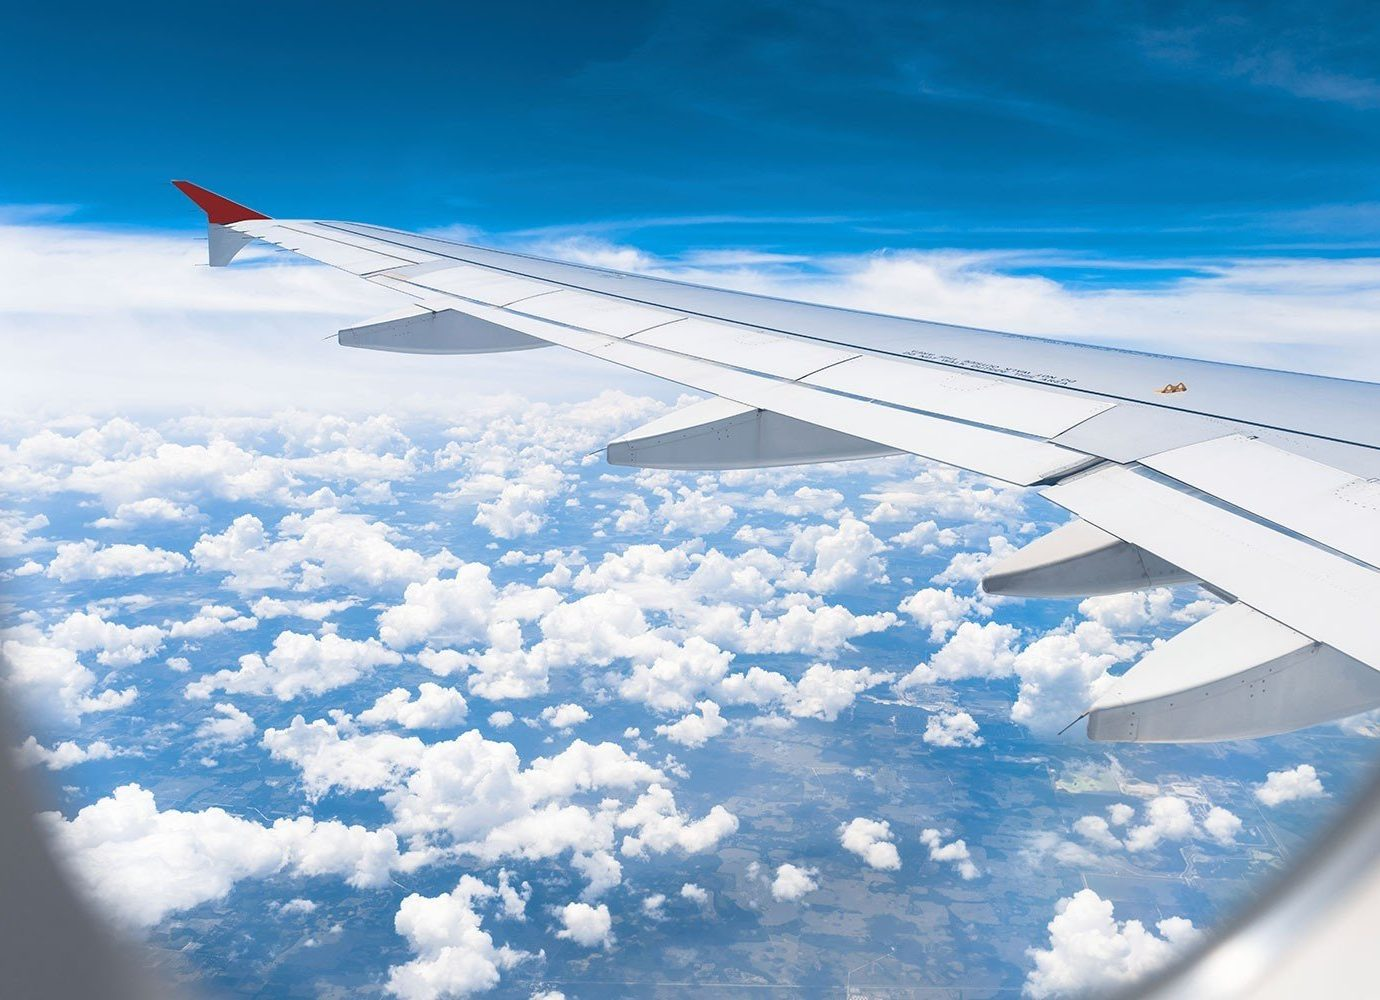 Offbeat sky outdoor plane airline airplane air travel blue aircraft airliner atmosphere clouds atmosphere of earth cloud flight Nature vehicle aviation wing jet narrow body aircraft day